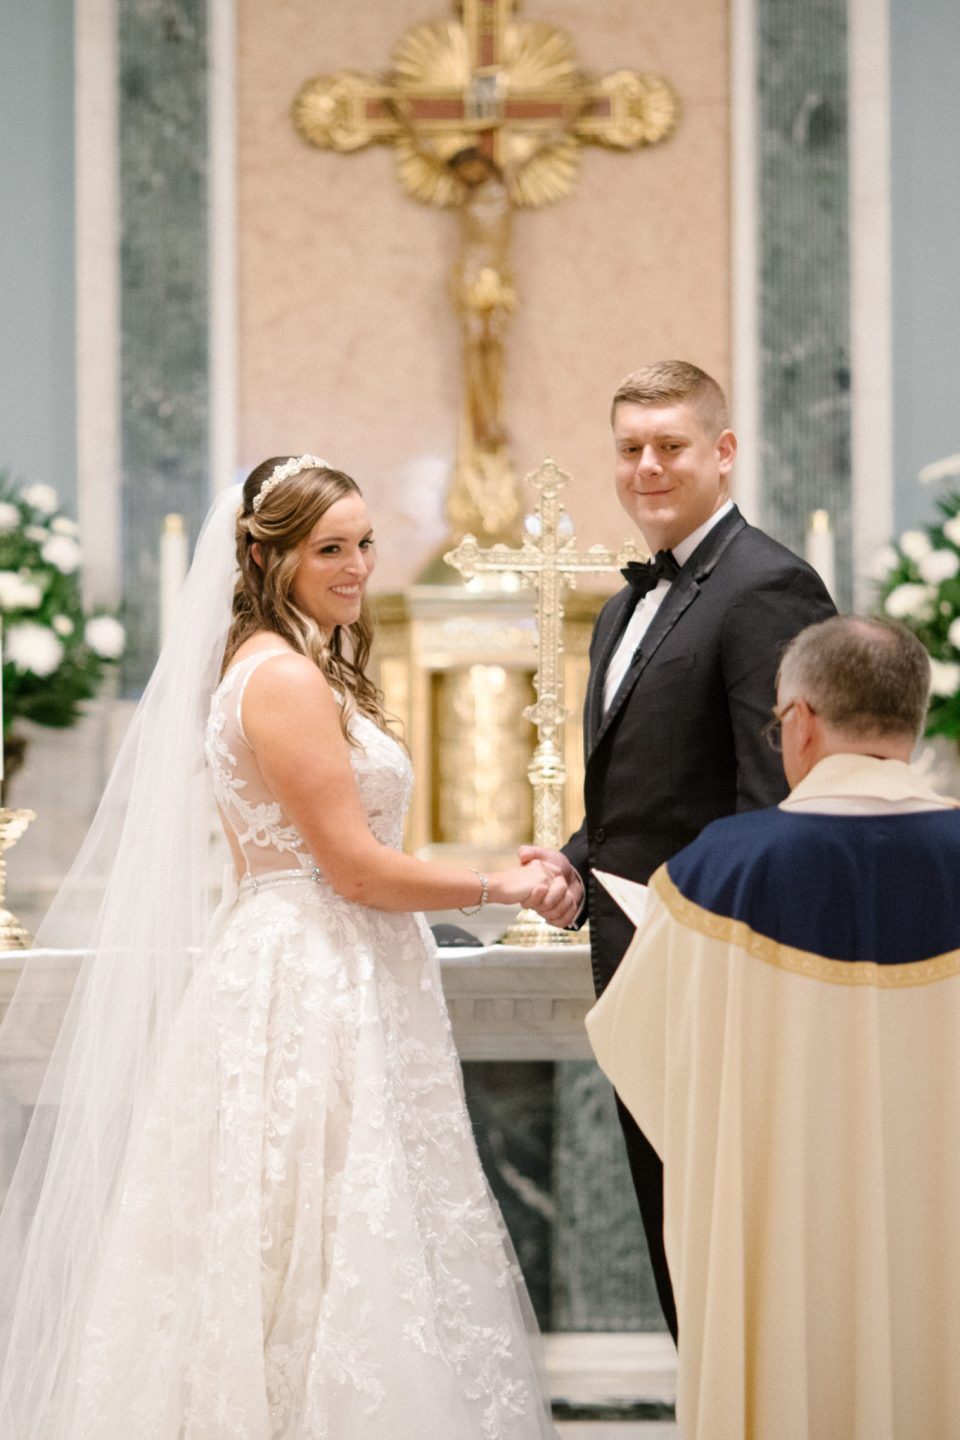 Nativity Church wedding ceremony photographed by Ashley Mac Photographs